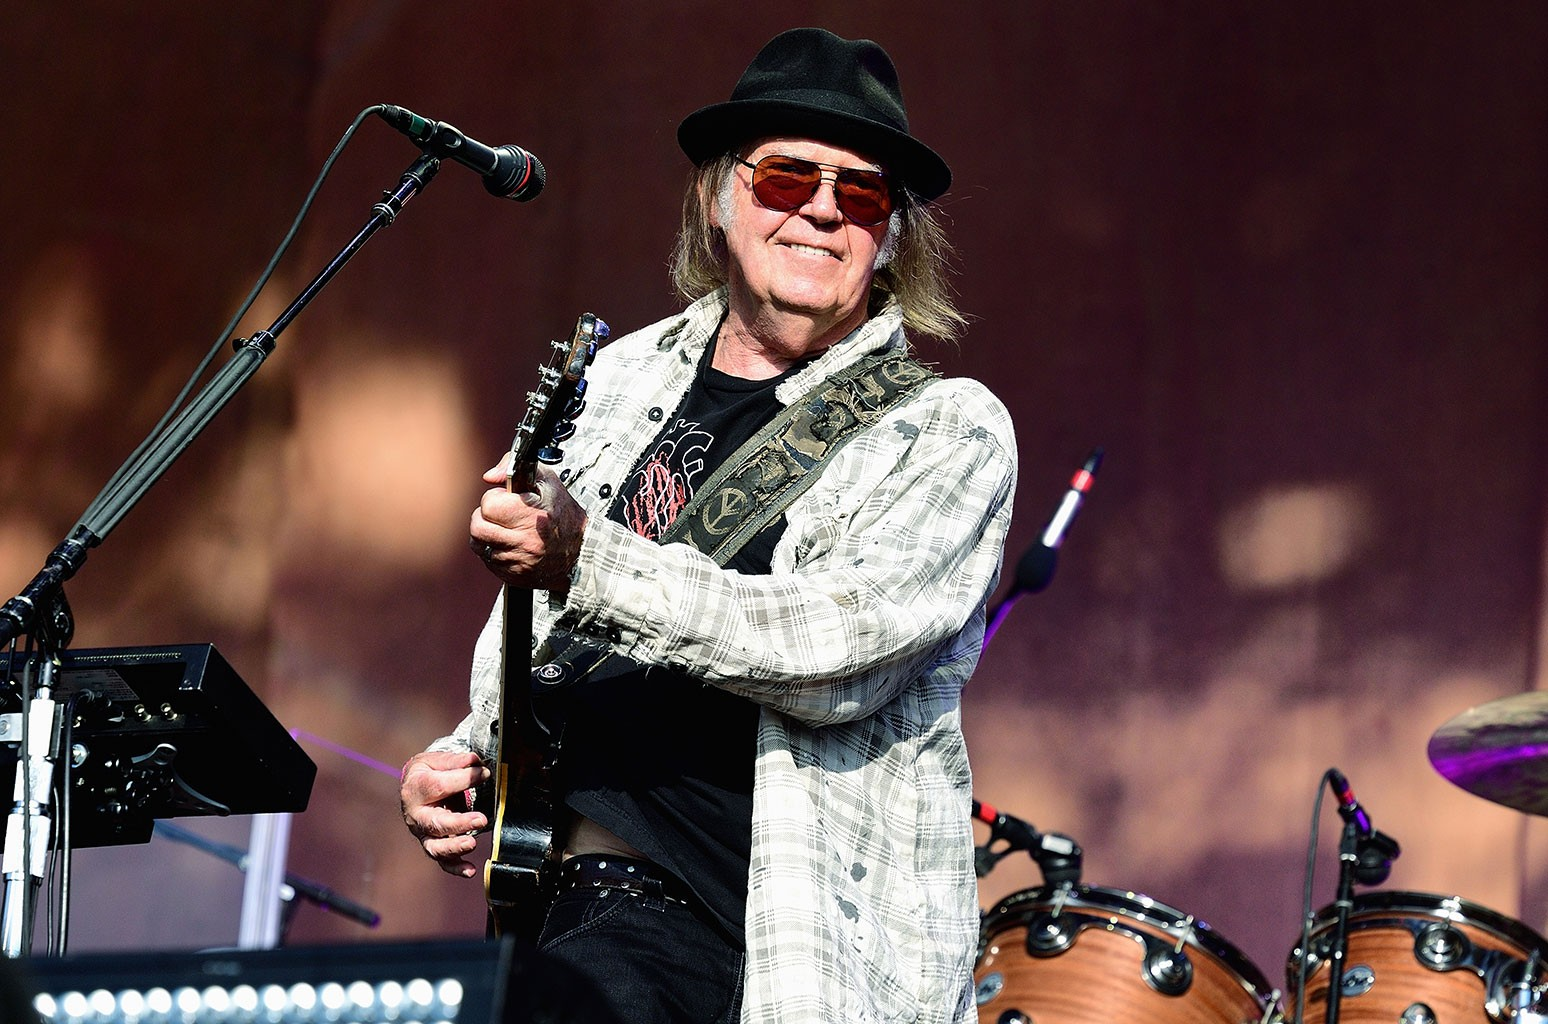 Neil Young 1982 was unreleased the 'Coming to You Soon' is the album can reveals